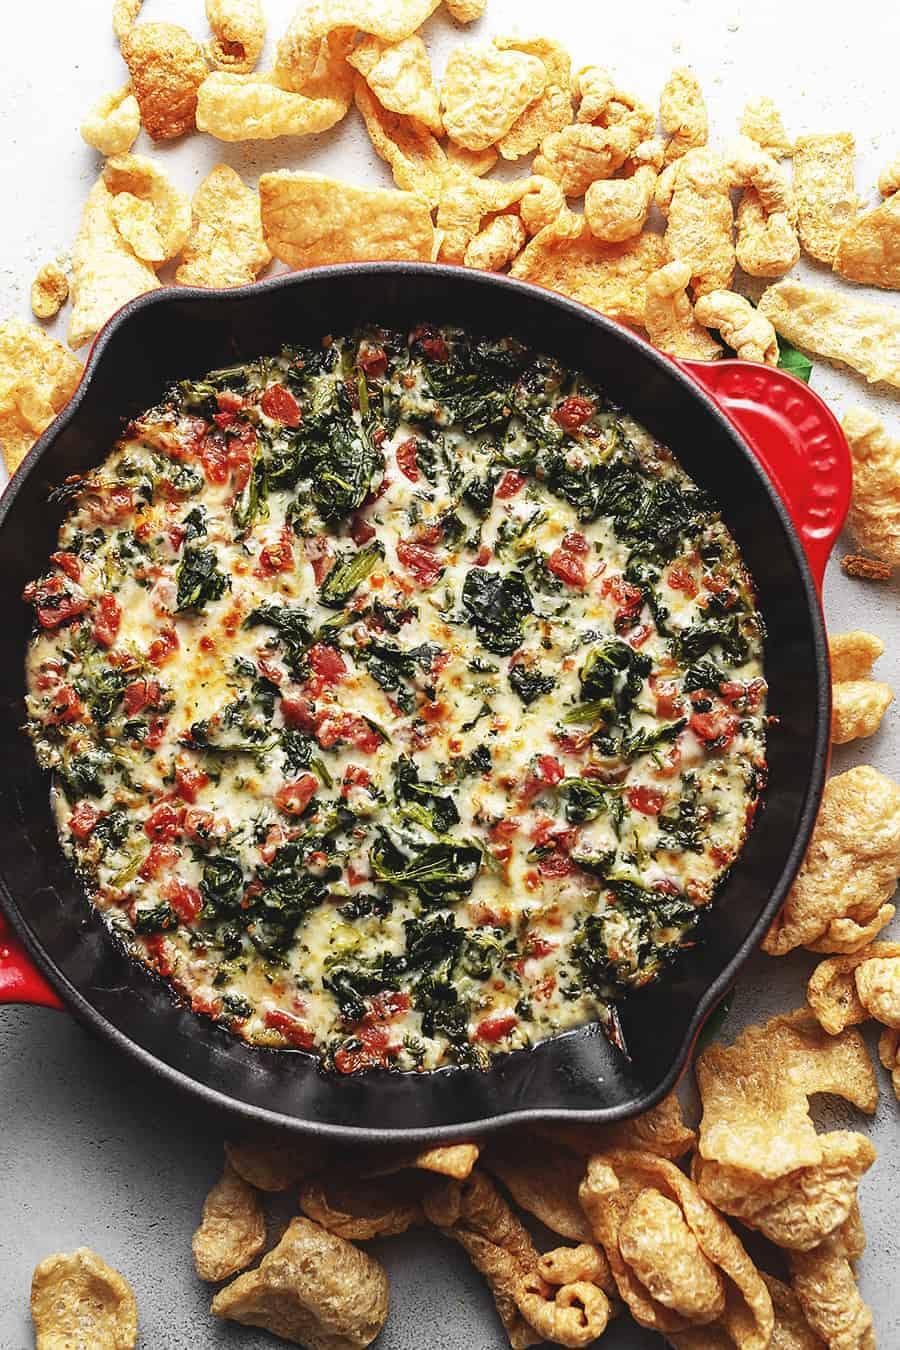 spinach dip with pork rinds